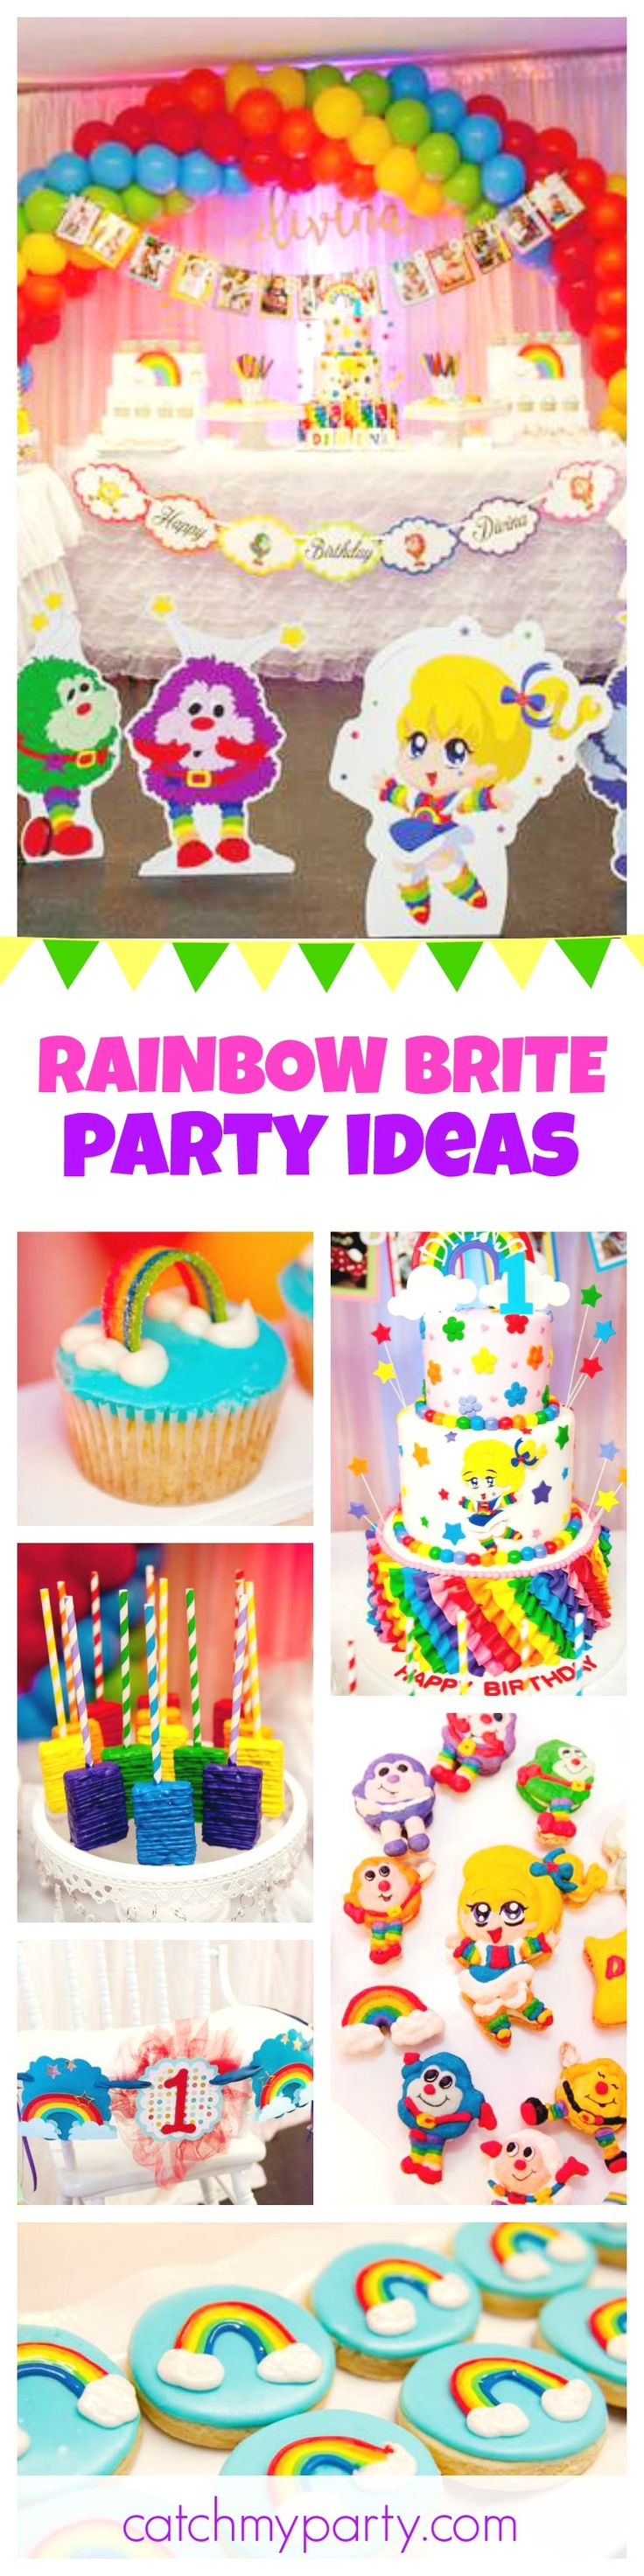 721 best rainbow party ideas images on pinterest birthday party